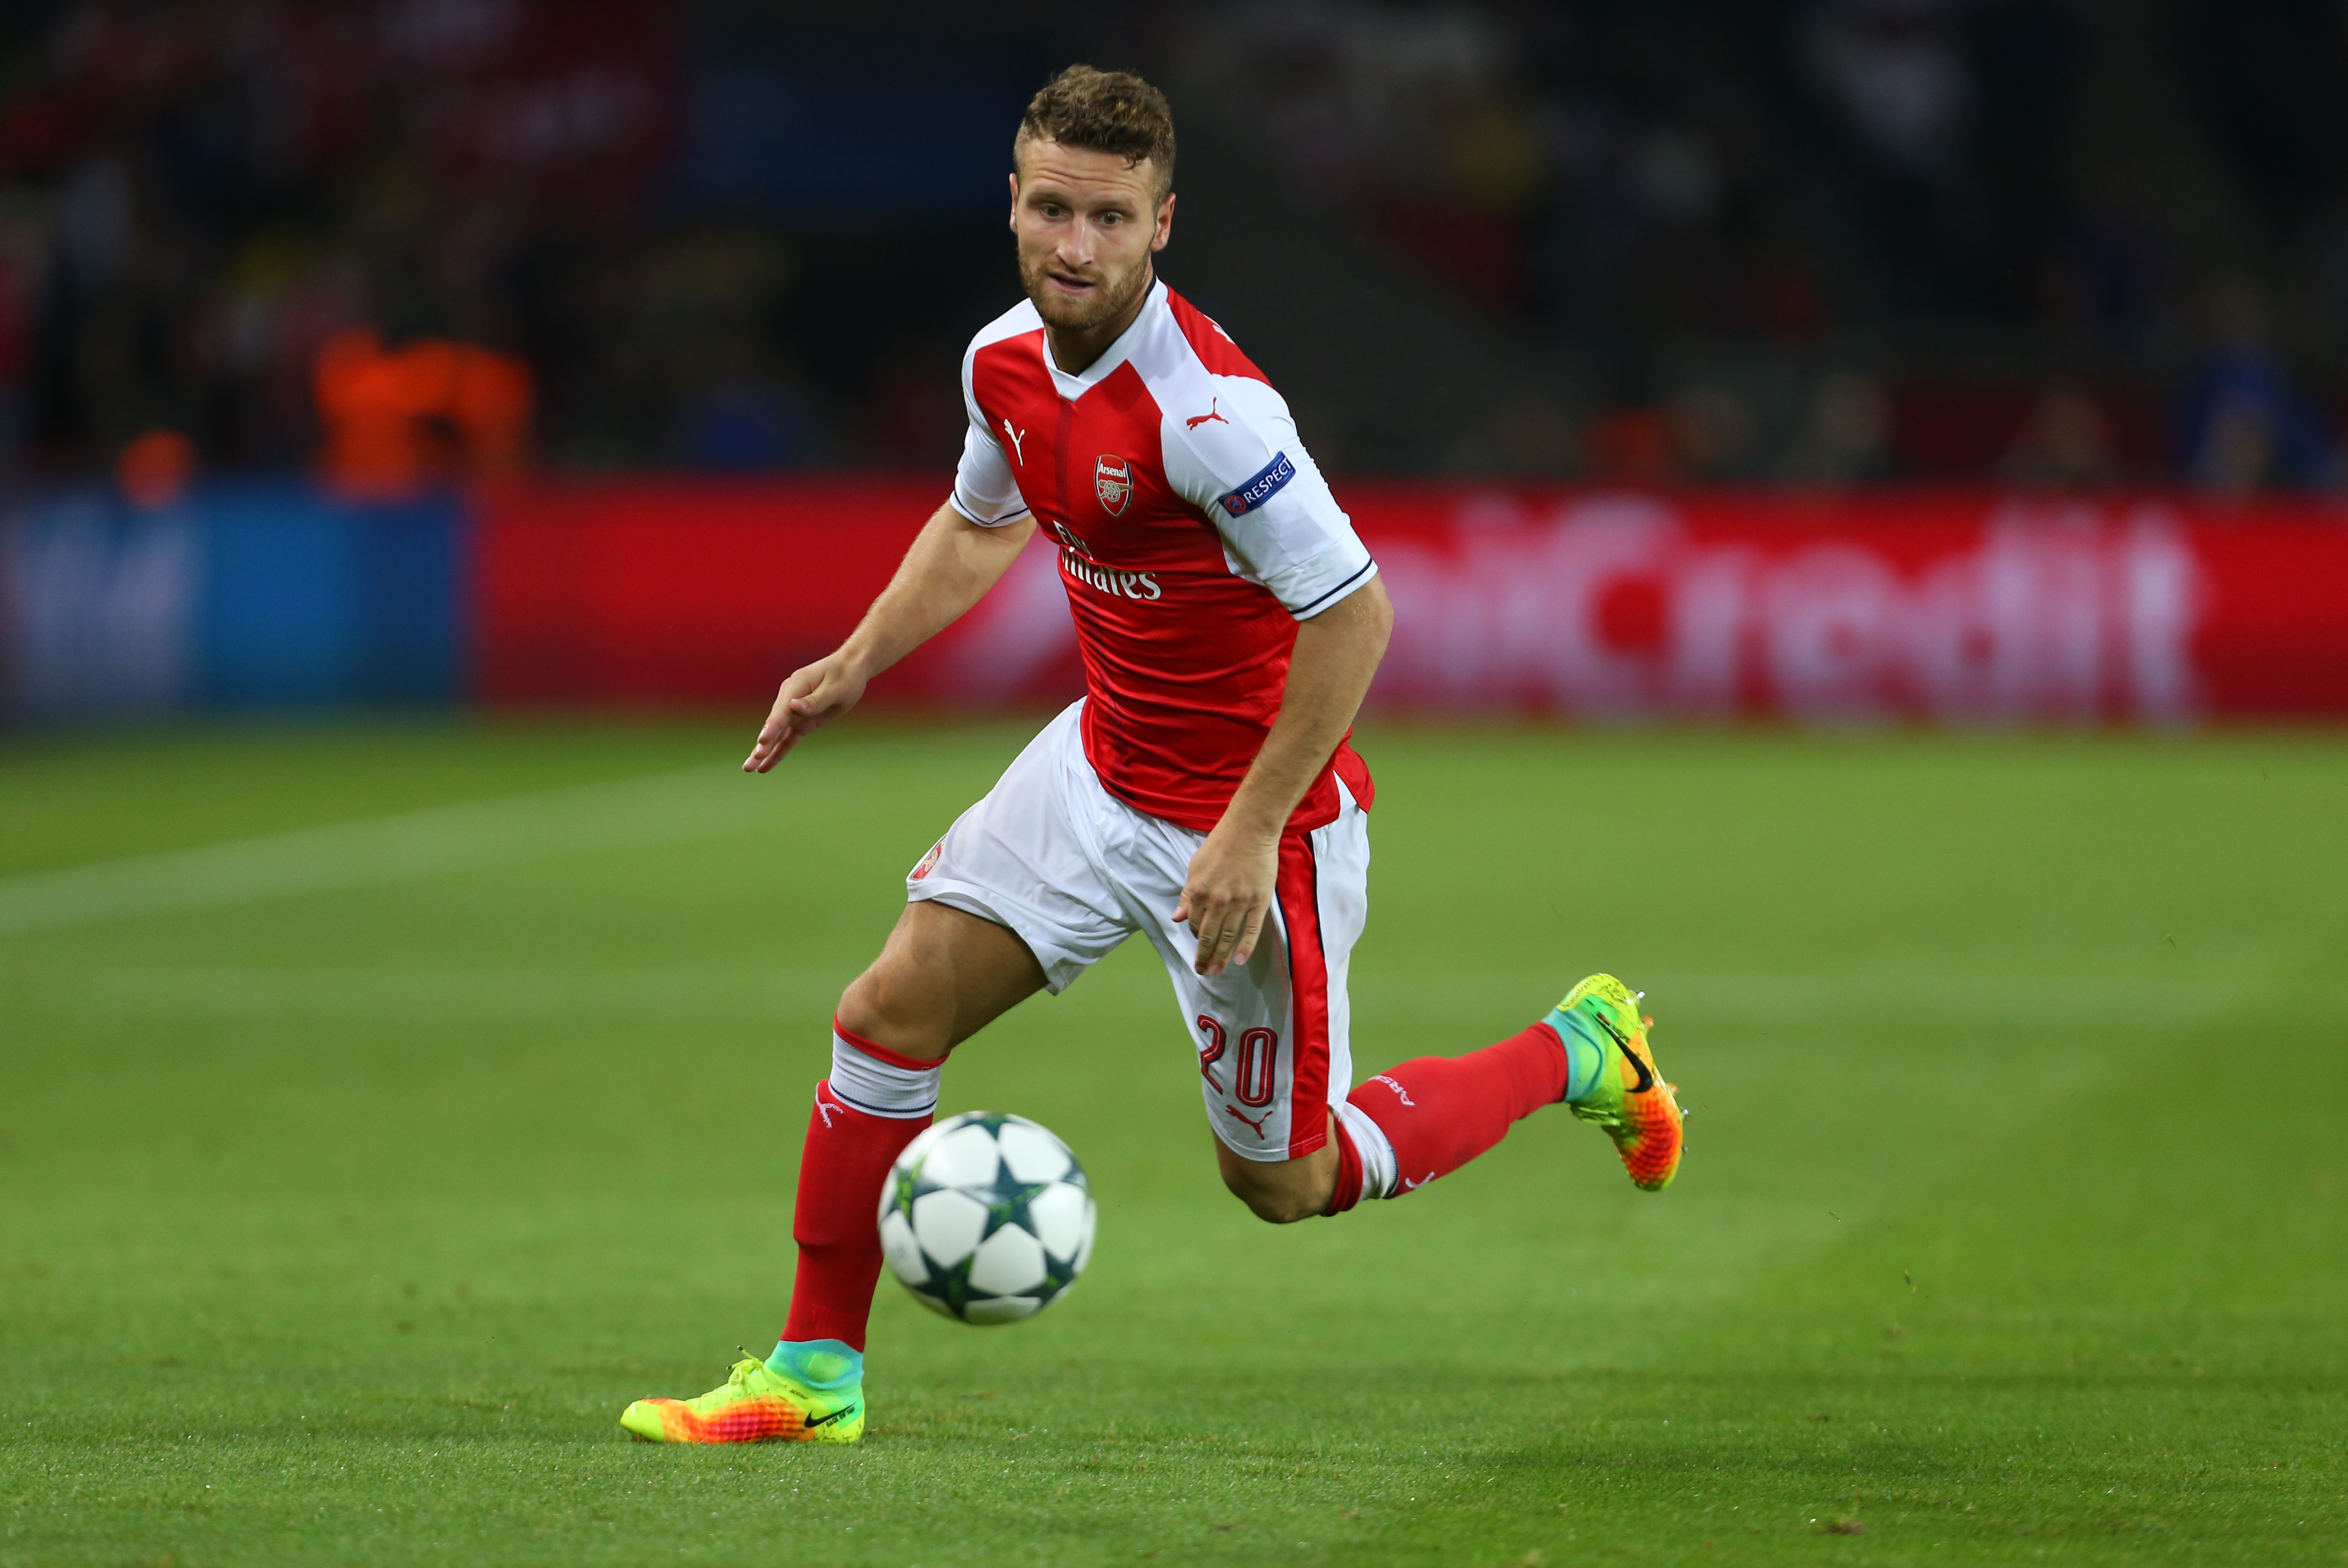 Arsenal: Let's Stay Grounded With Shkodran Mustafi Criticism